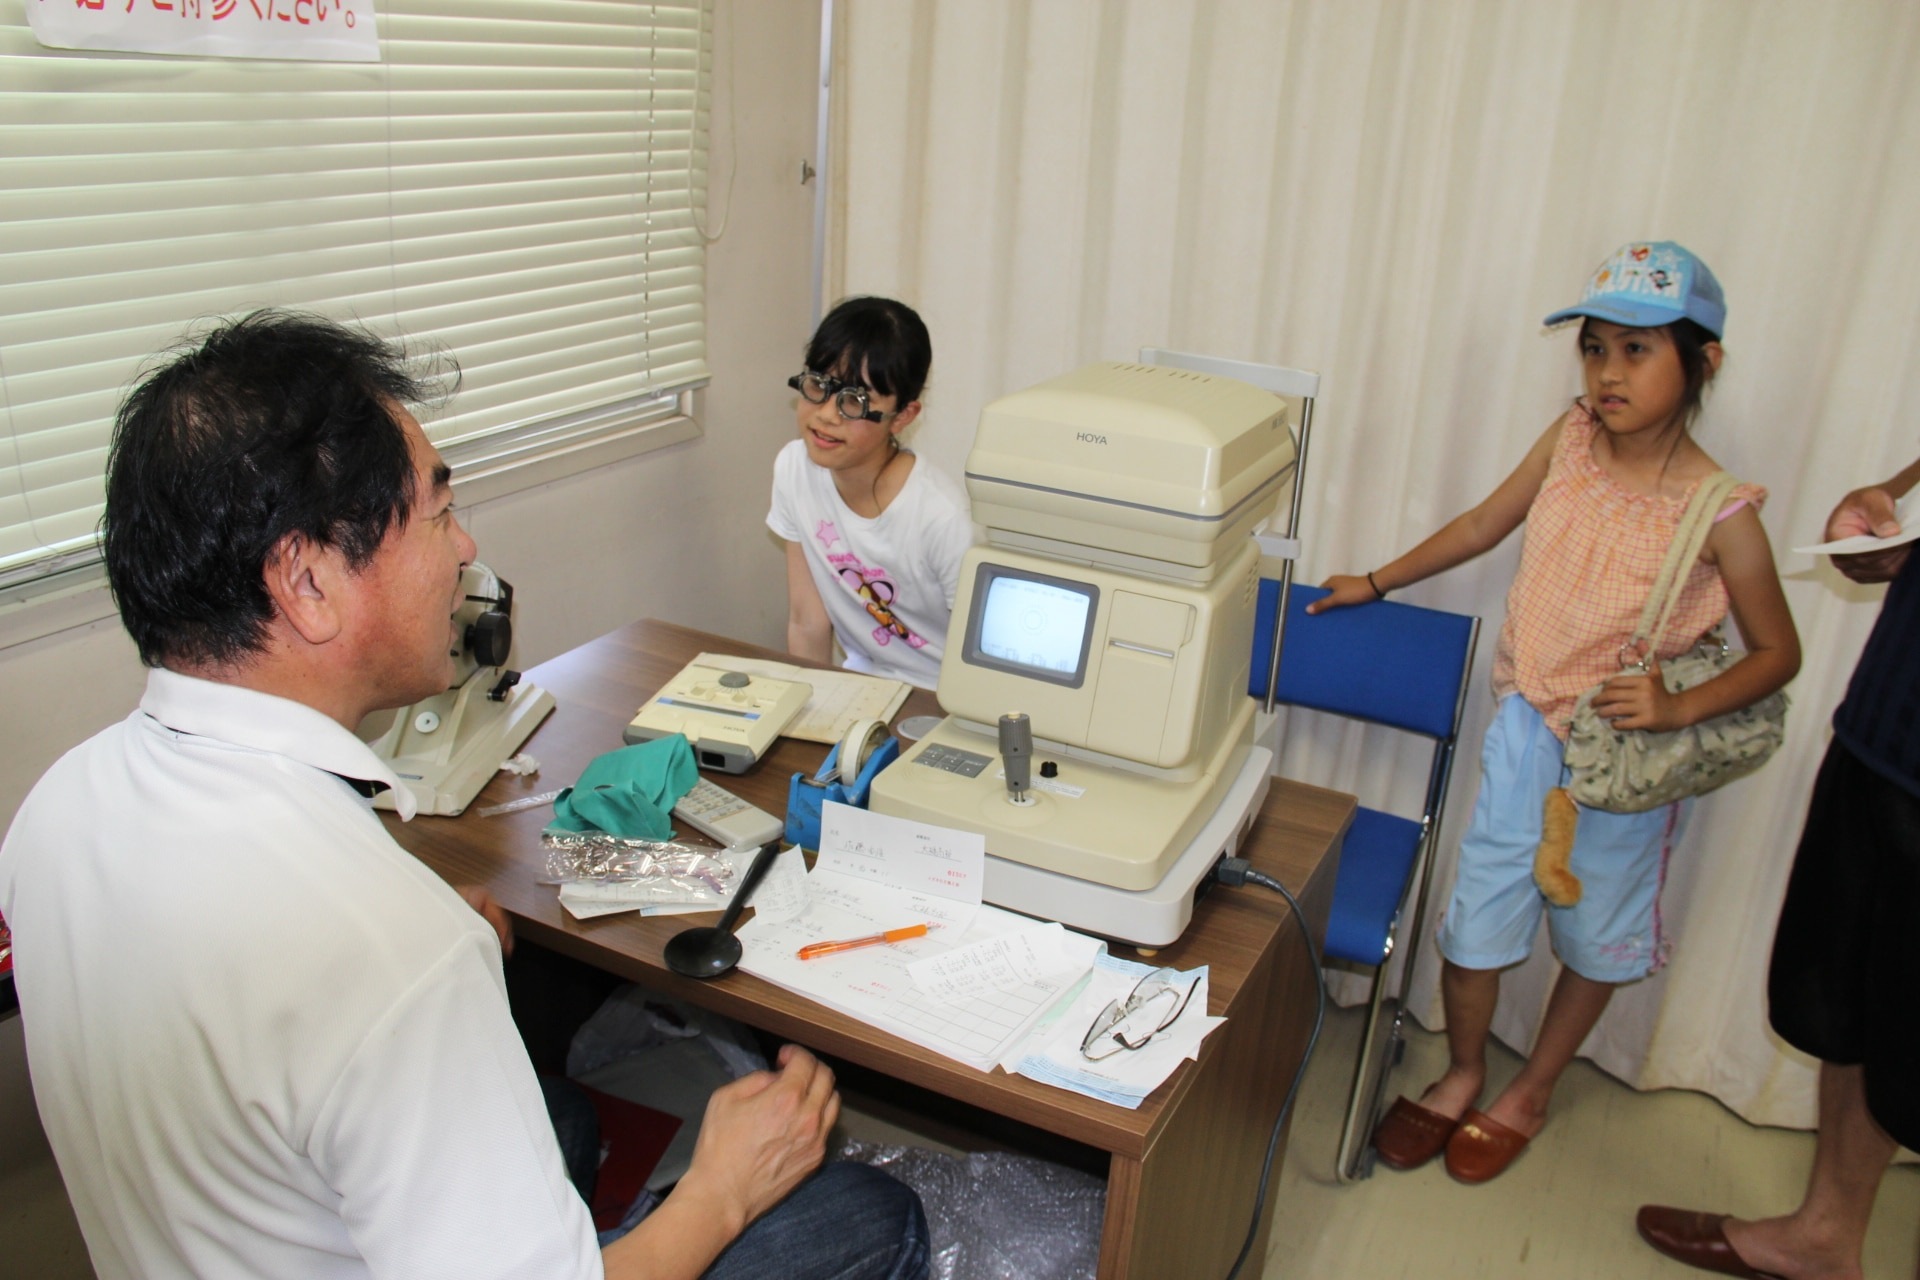 In Japan, girls receive eye exams as part of an ongoing disaster relief project after the devastating tsunami.